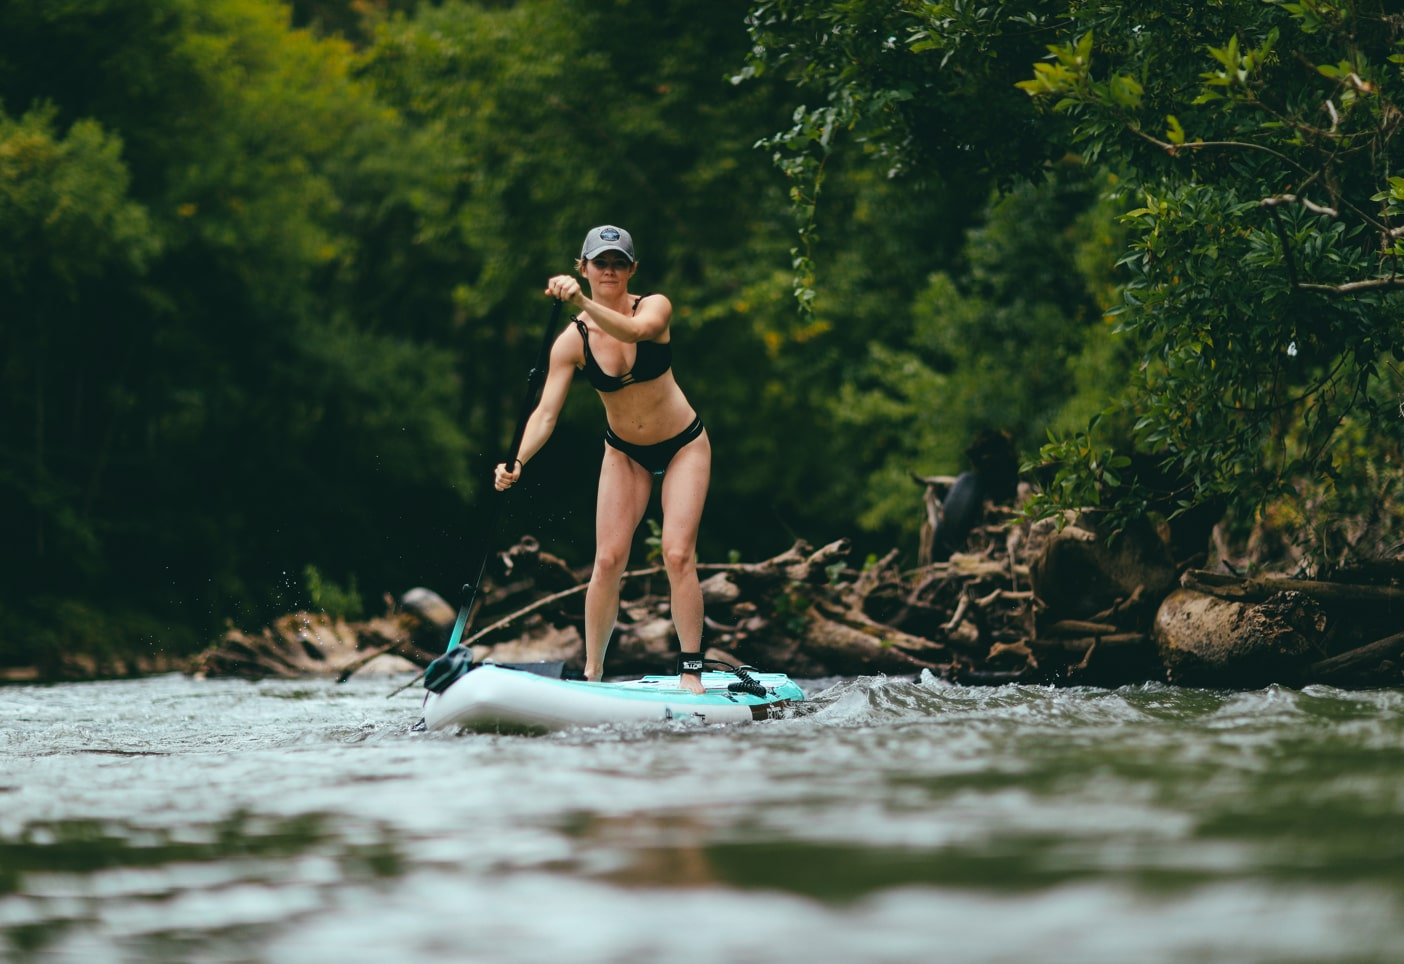 Paddling down a river just outside of town is an invigorating way to get back to nature